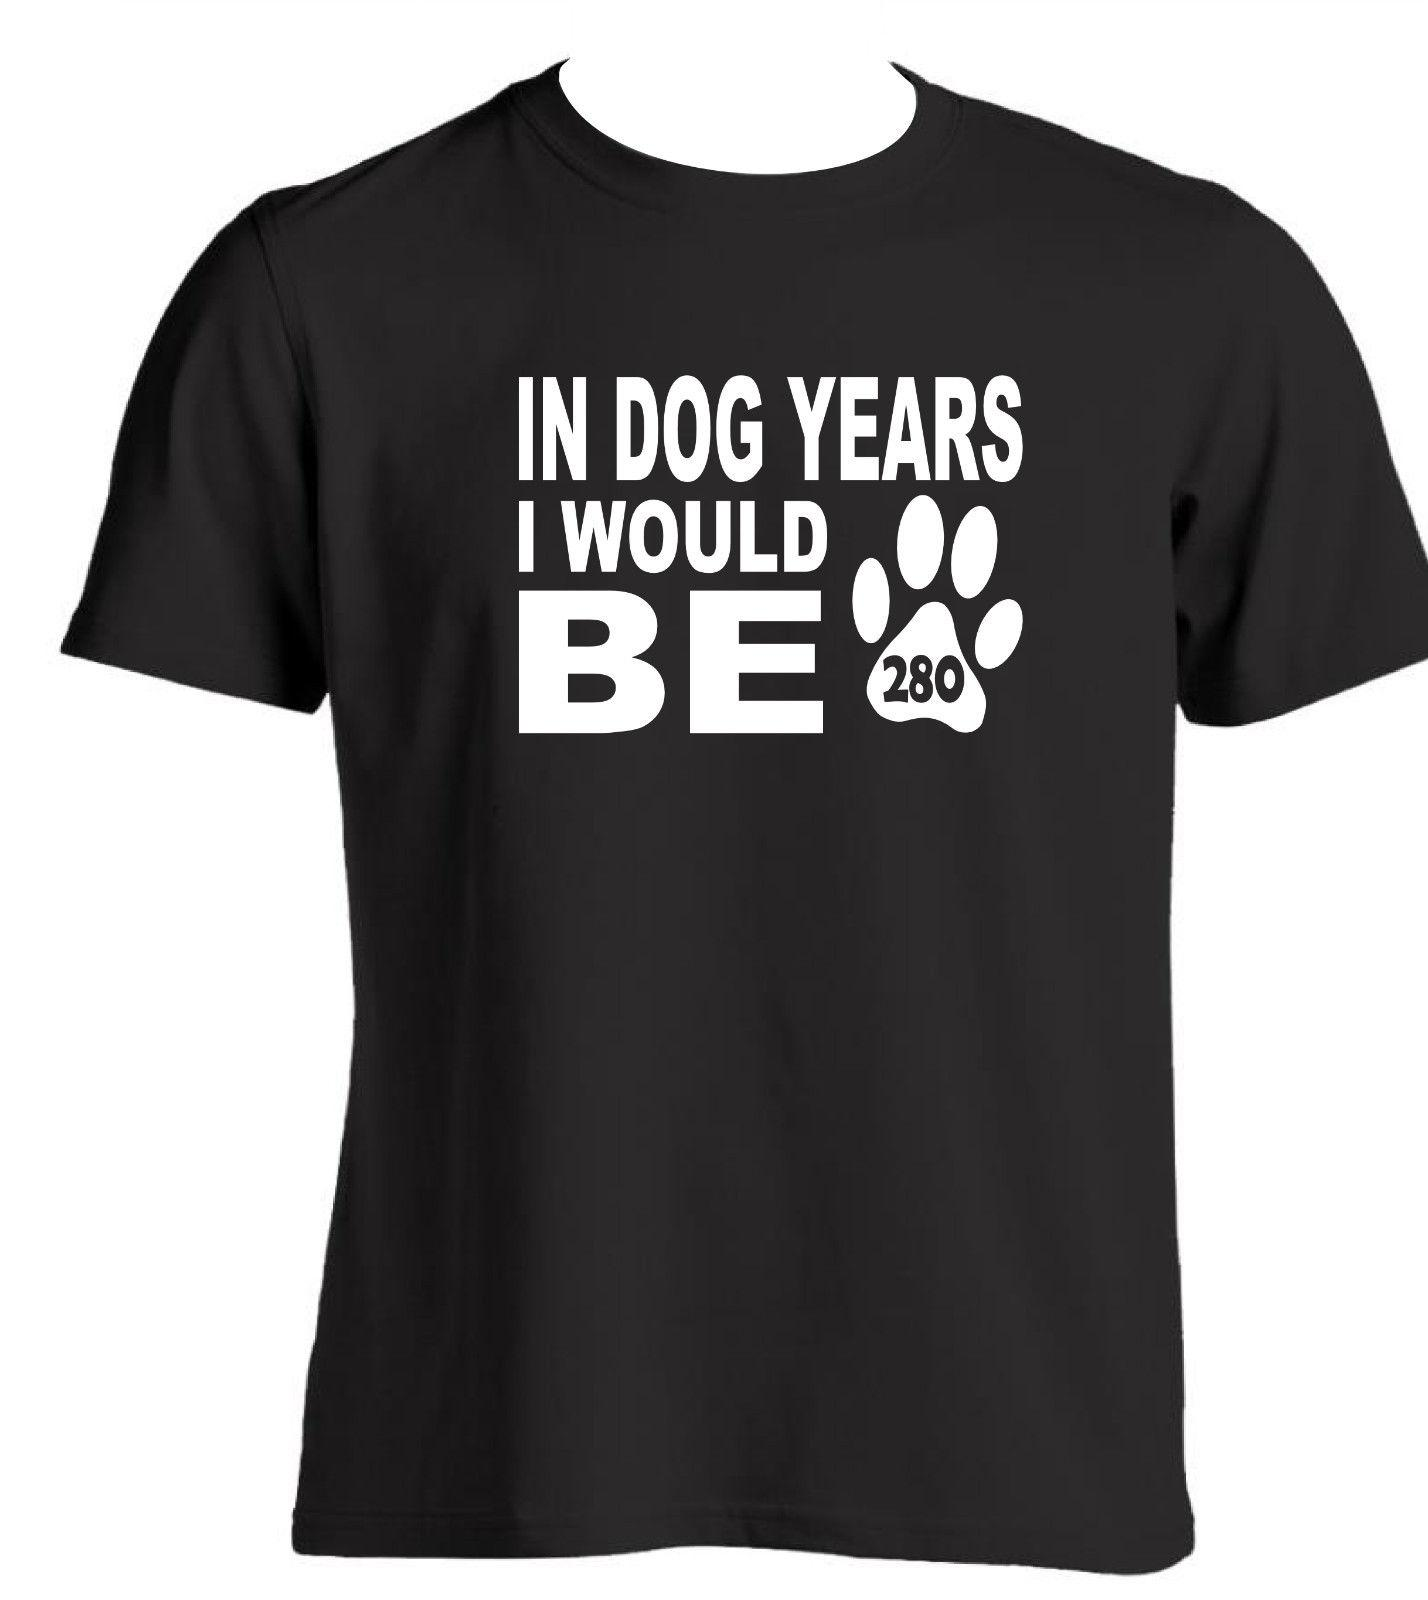 40th Birthday Gift Ideas For Men Novelty T Shirt Present 40 Years Funny Unisex Tee Shirts From Stshirt 1296